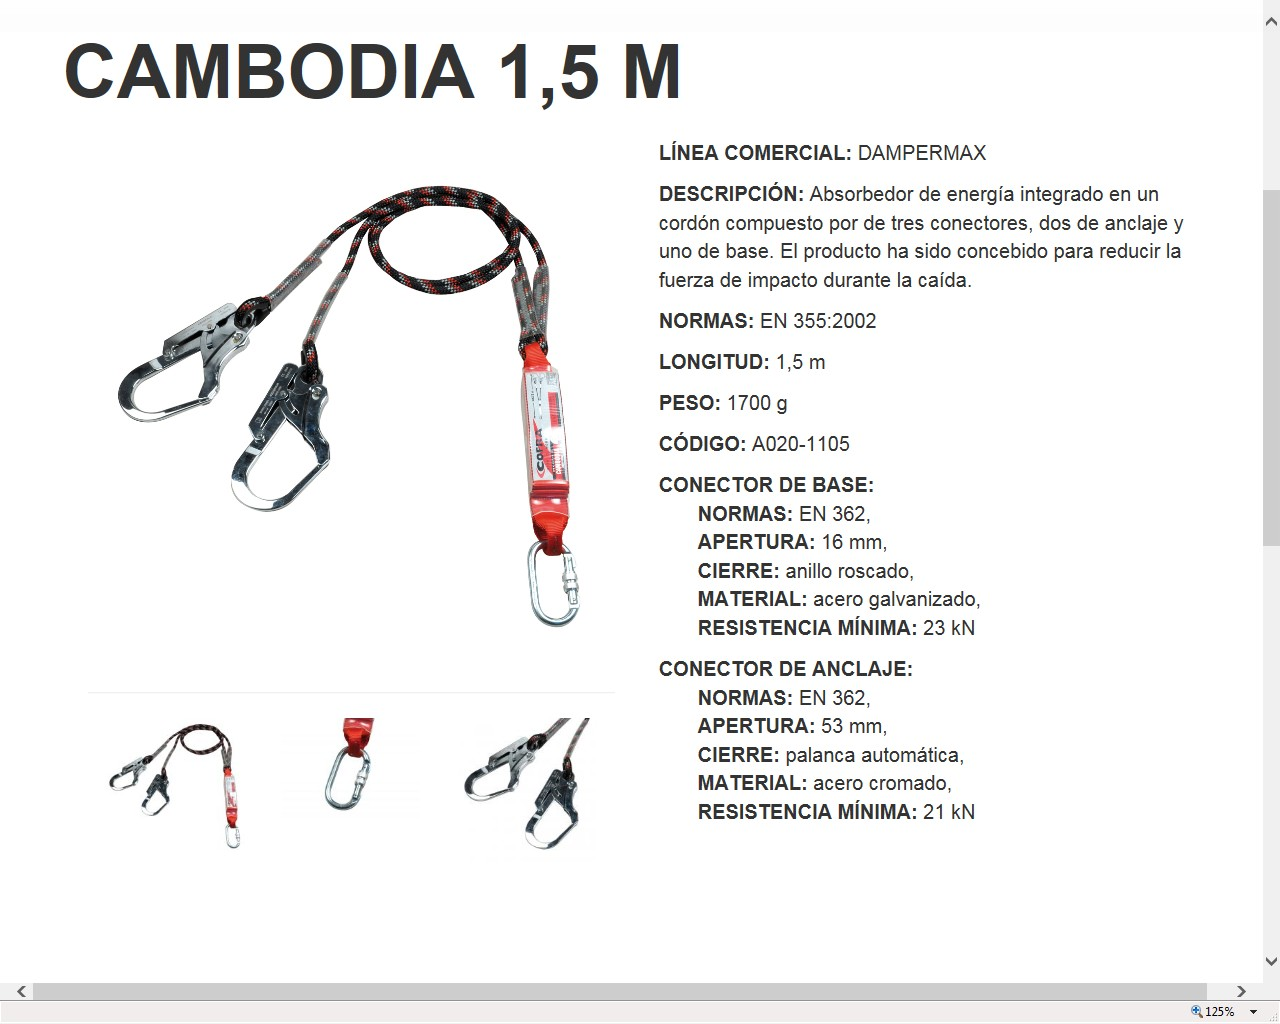 350426  ABSORBEDOR ENERGIA CAMBODIA /DAMPERMAX